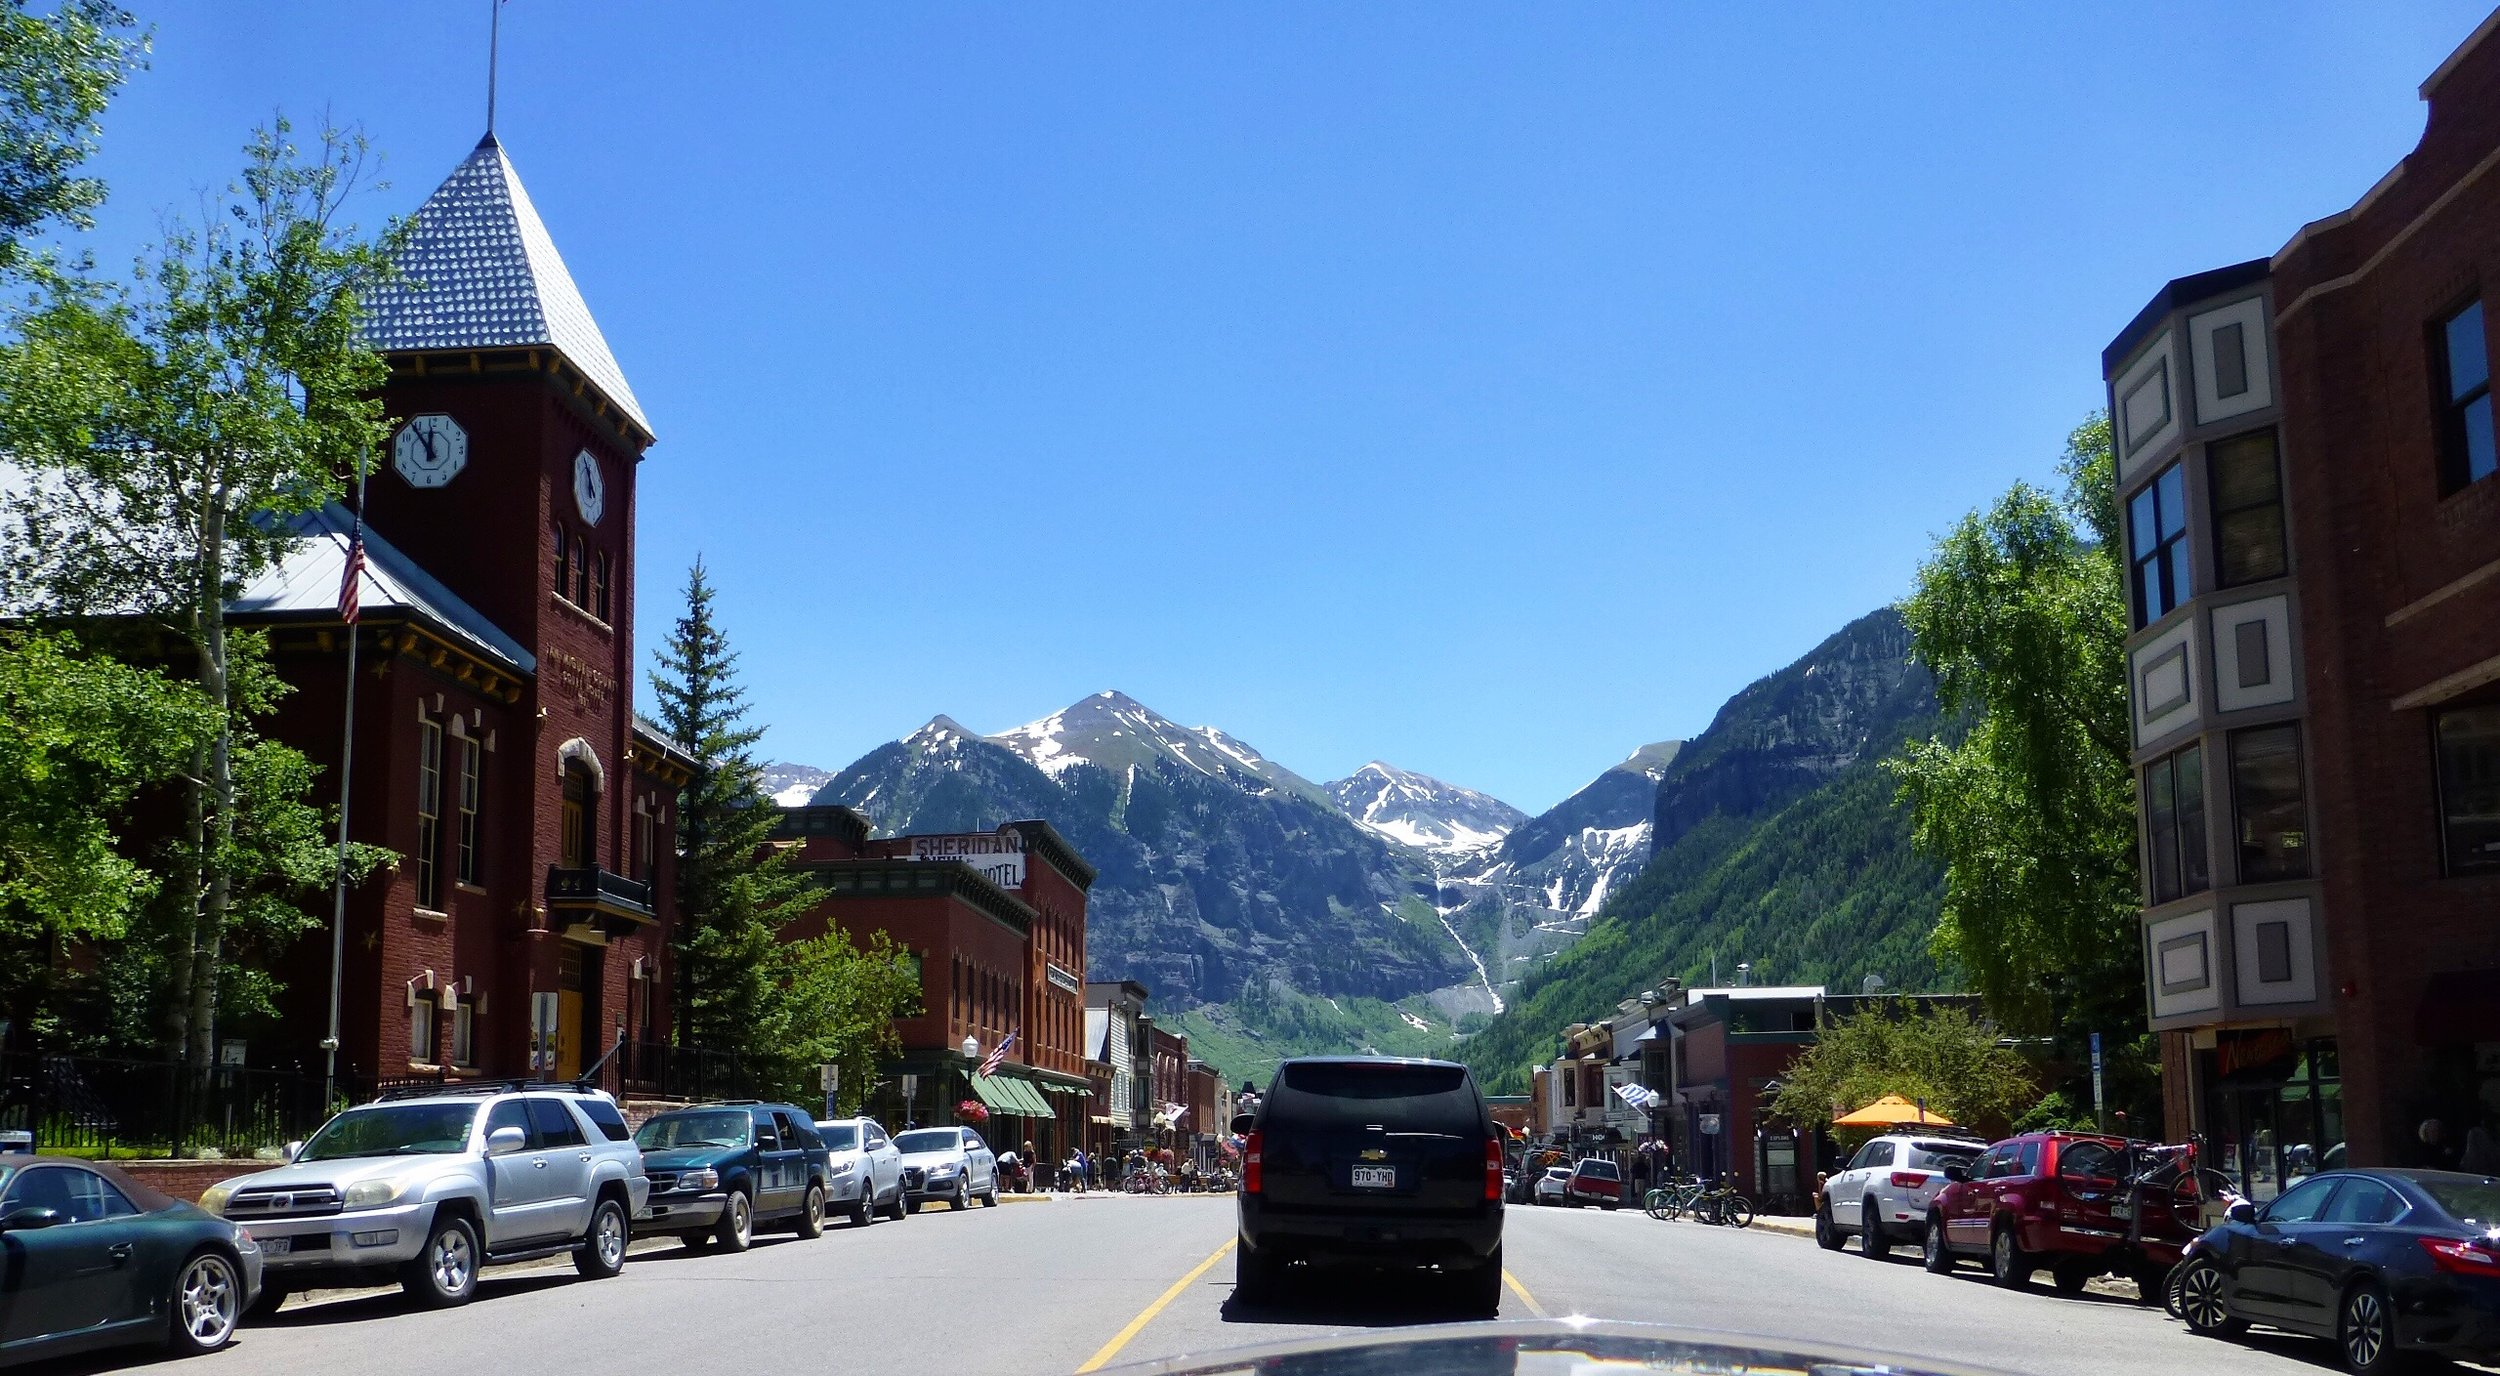 The town of Telluride, so pretty